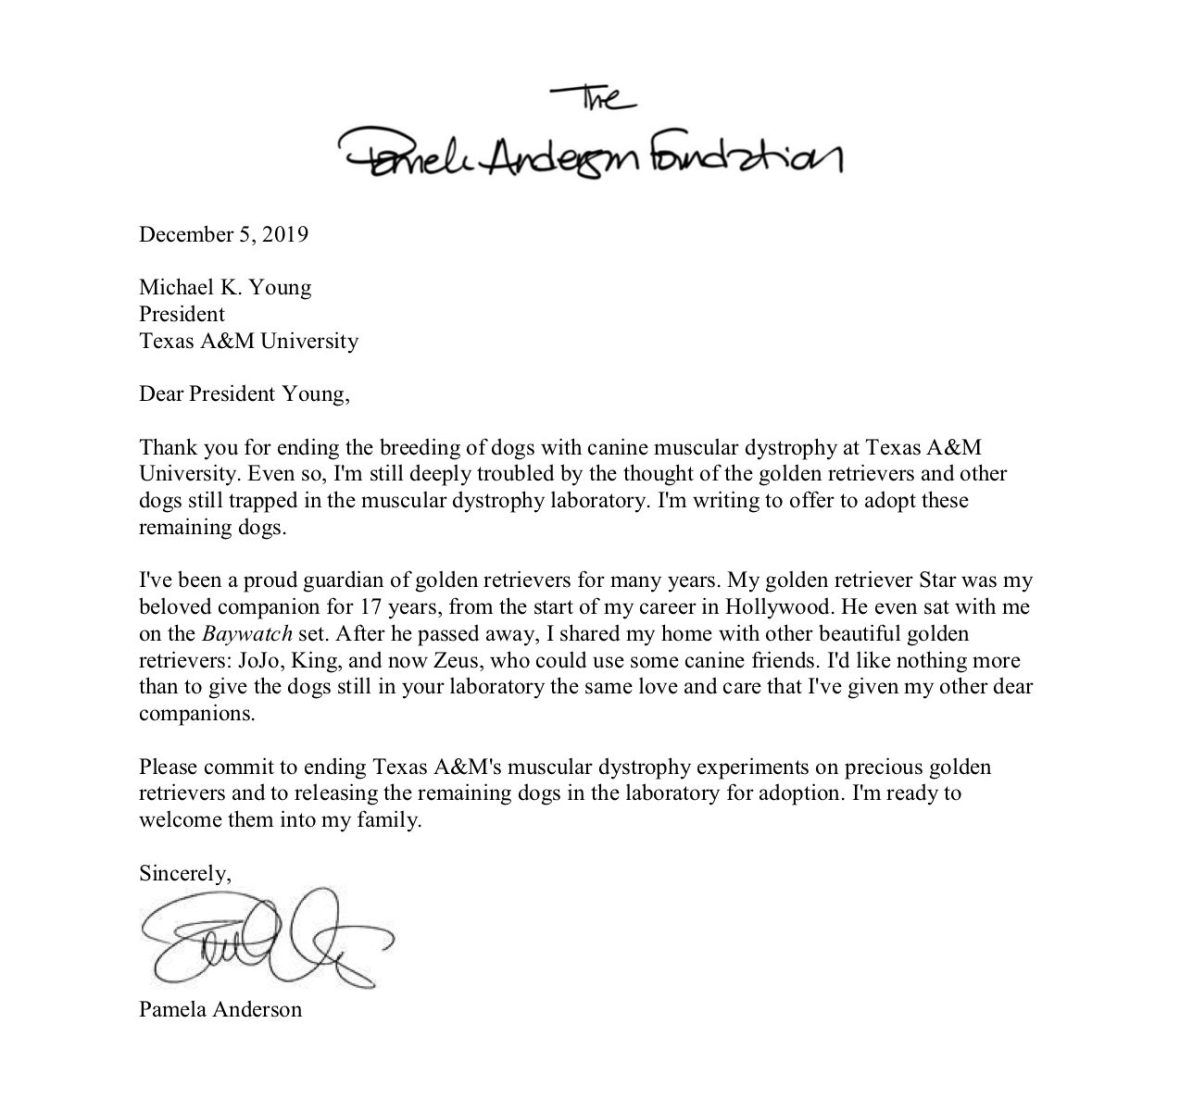 Pamela Anderson Letter to Texas A&M University in Partnership With PETA